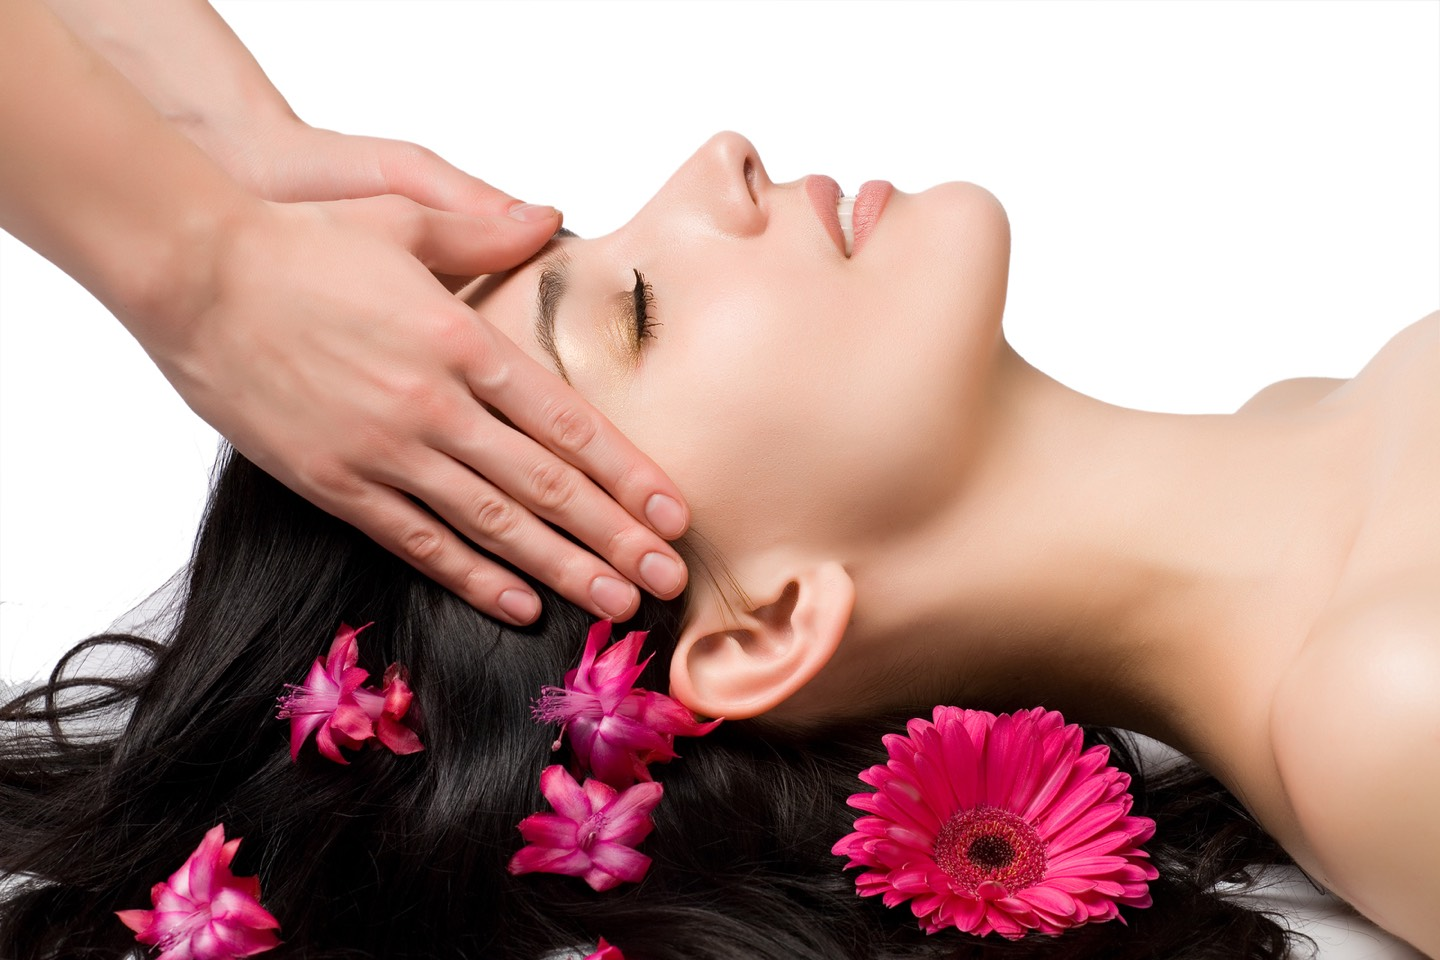 While washing your hair, don't just WASH it, MASSAGE your head :) it feels so good, and gives your scalp a good clean as you massage with shampoo!